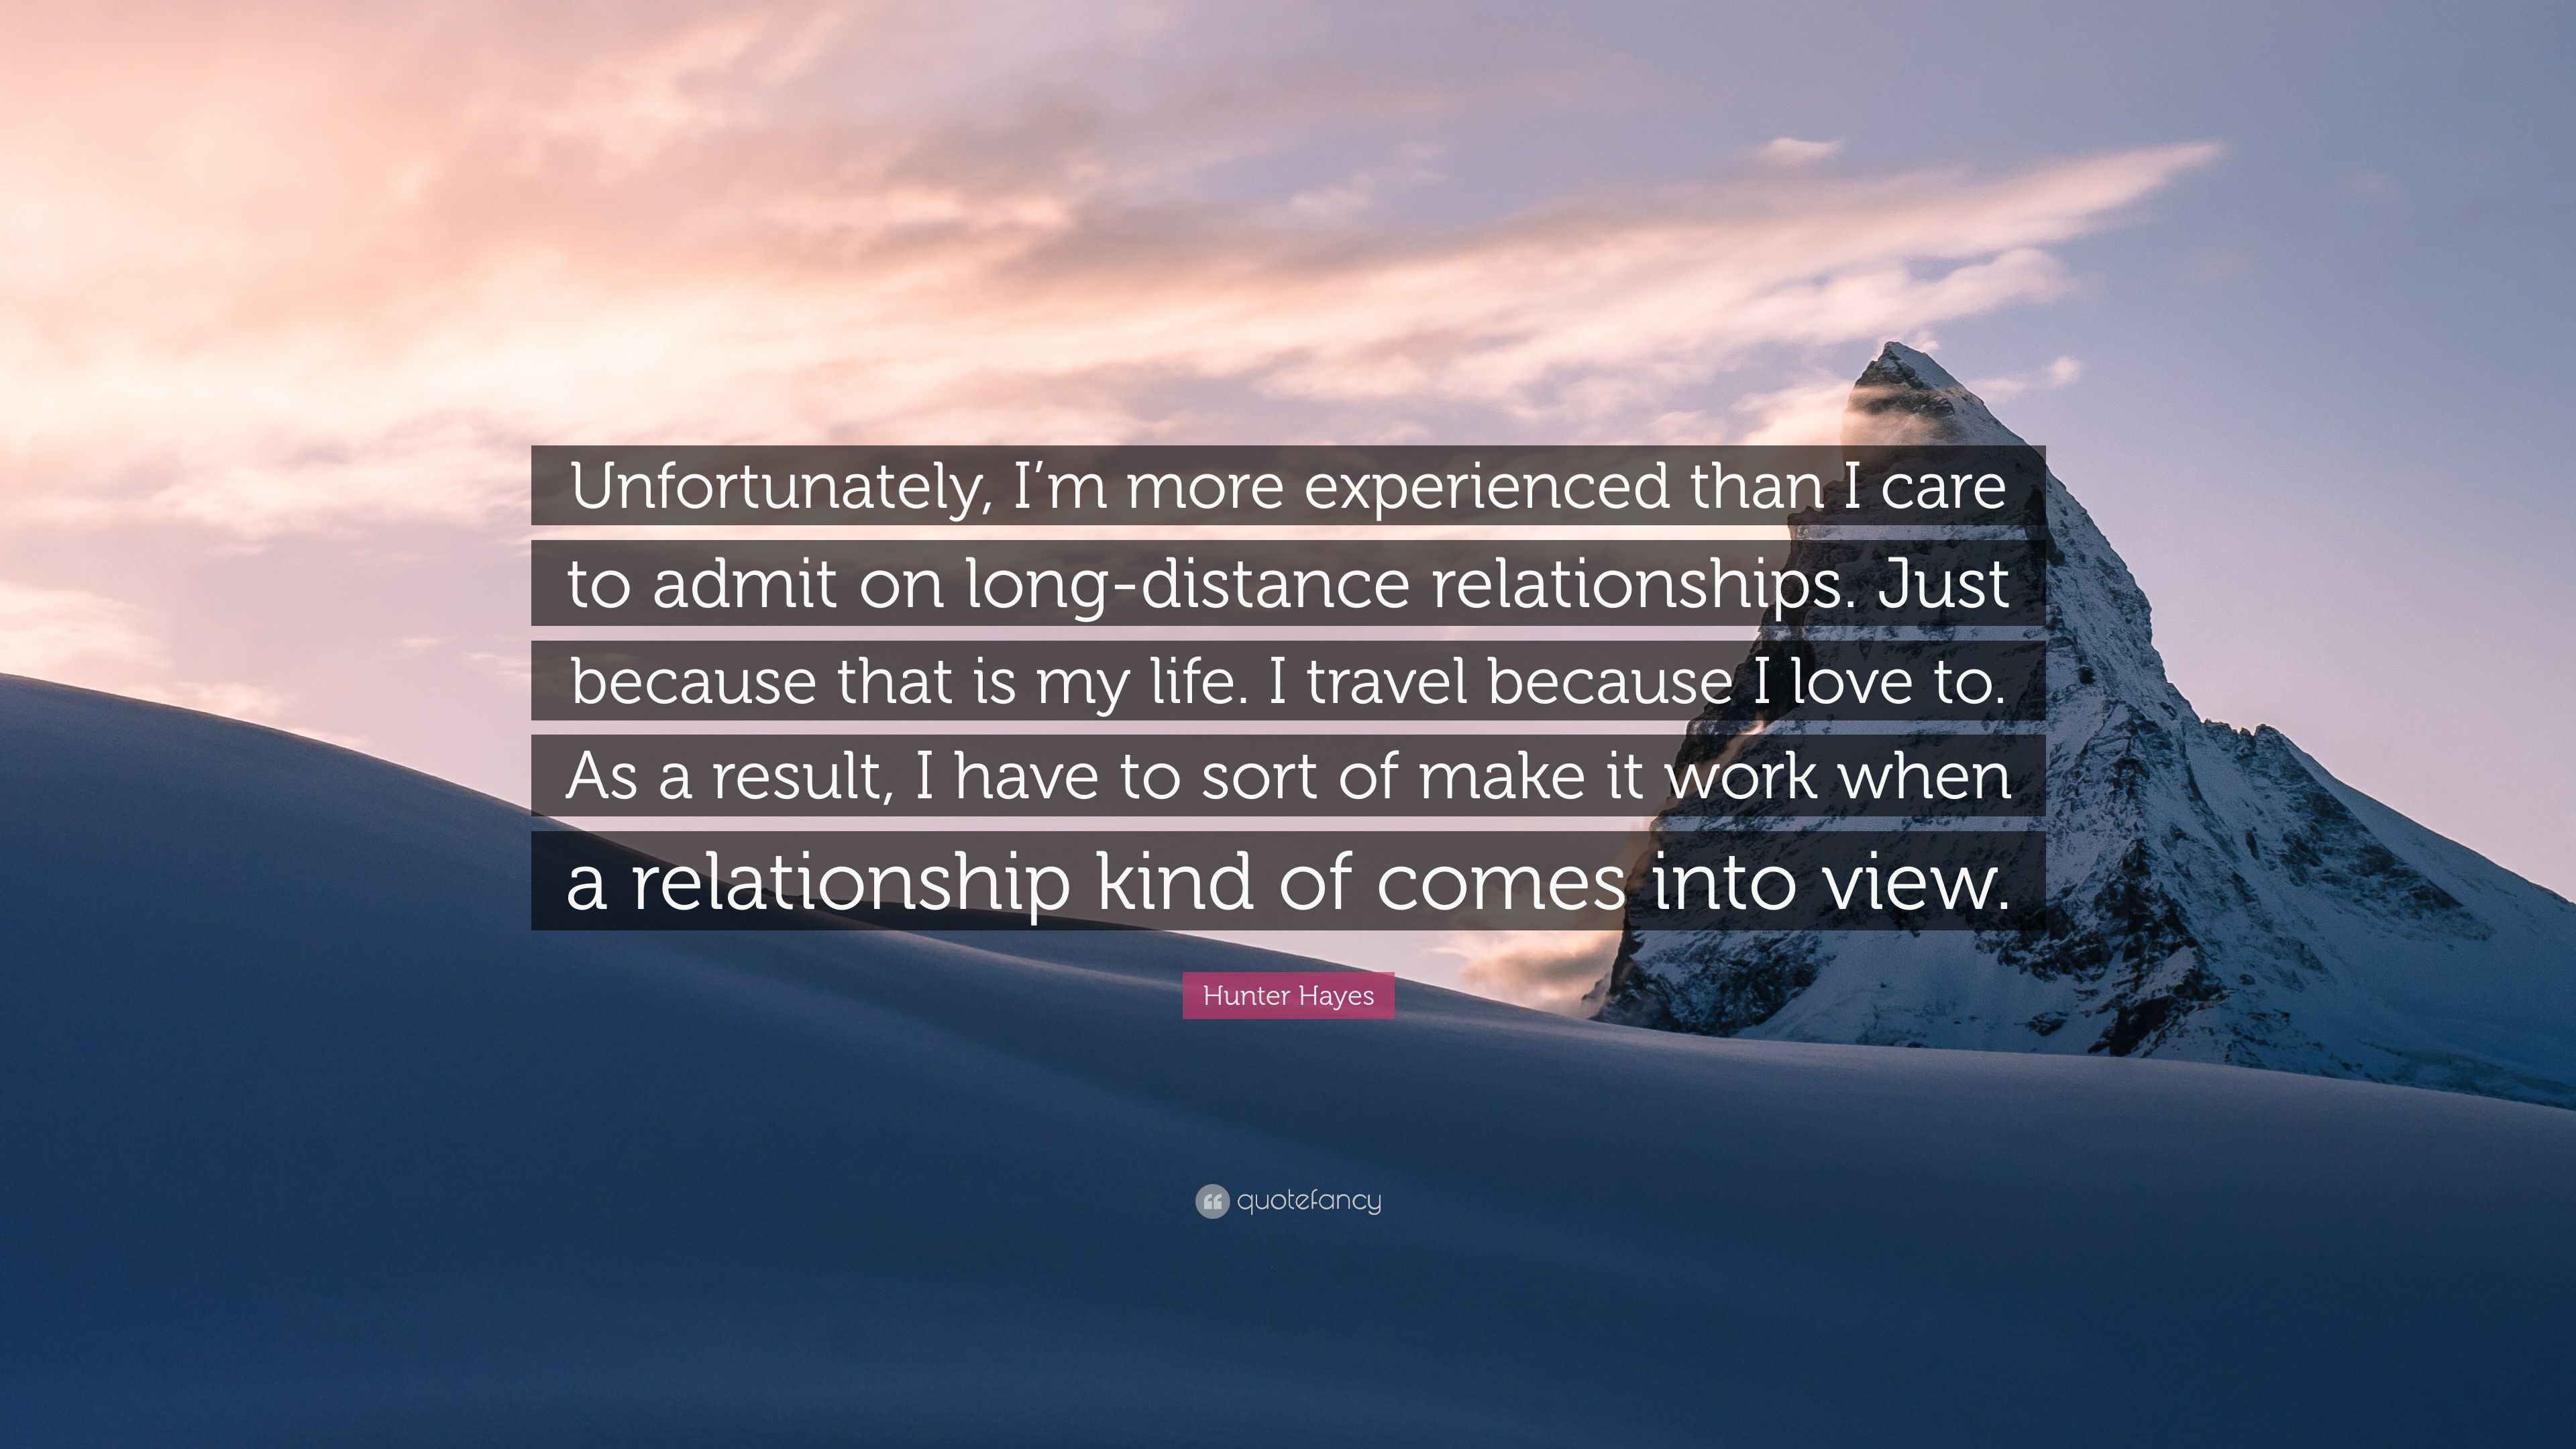 Hunter Hayes Quote Unfortunately I M More Experienced Than I Care To Admit On Long Distance Relationships Just Because That Is My Life I 7 Wallpapers Quotefancy